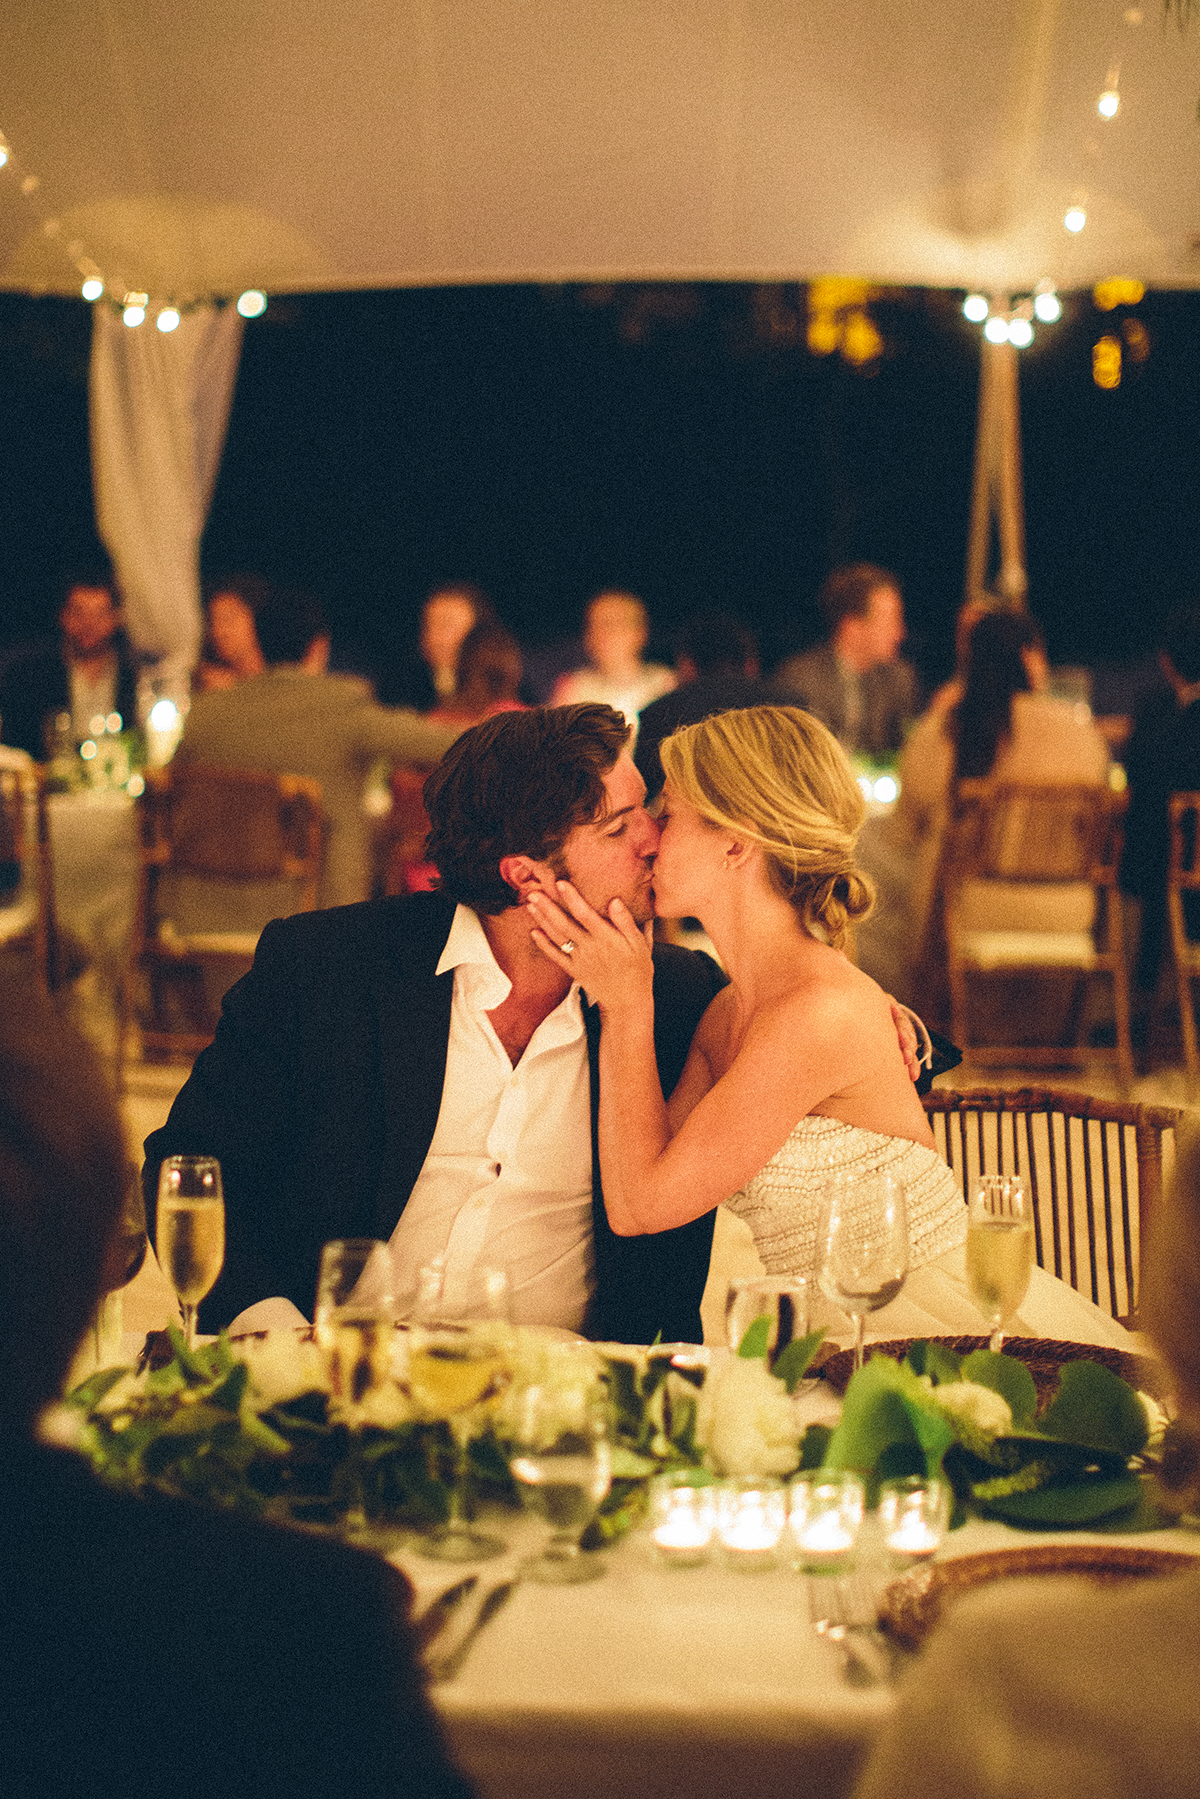 destination-intimate-moment-kiss-wedding-harbour-island.jpg